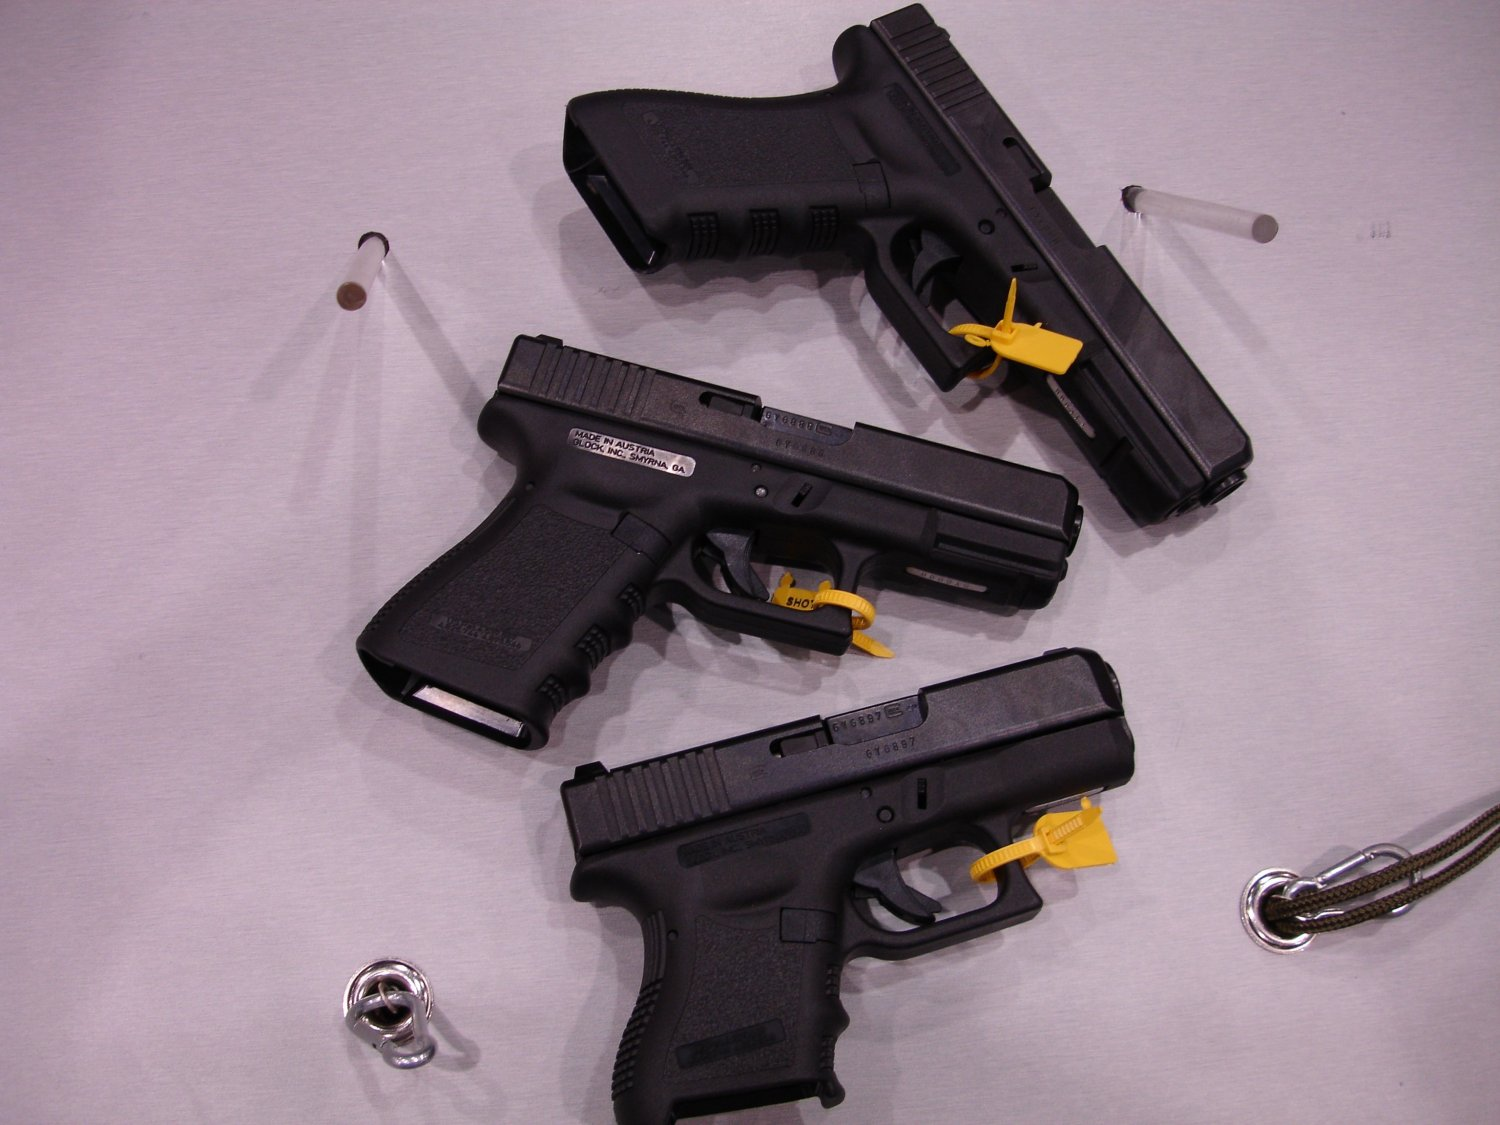 SHOTShow2005 Glock37,38,39%20%28.45%20GAP%29 1 <!  :en  >Glock 38 (G38) Compact and Glock 39 (Subcompact) Pistols & Tactical Light/Laser<!  :  >